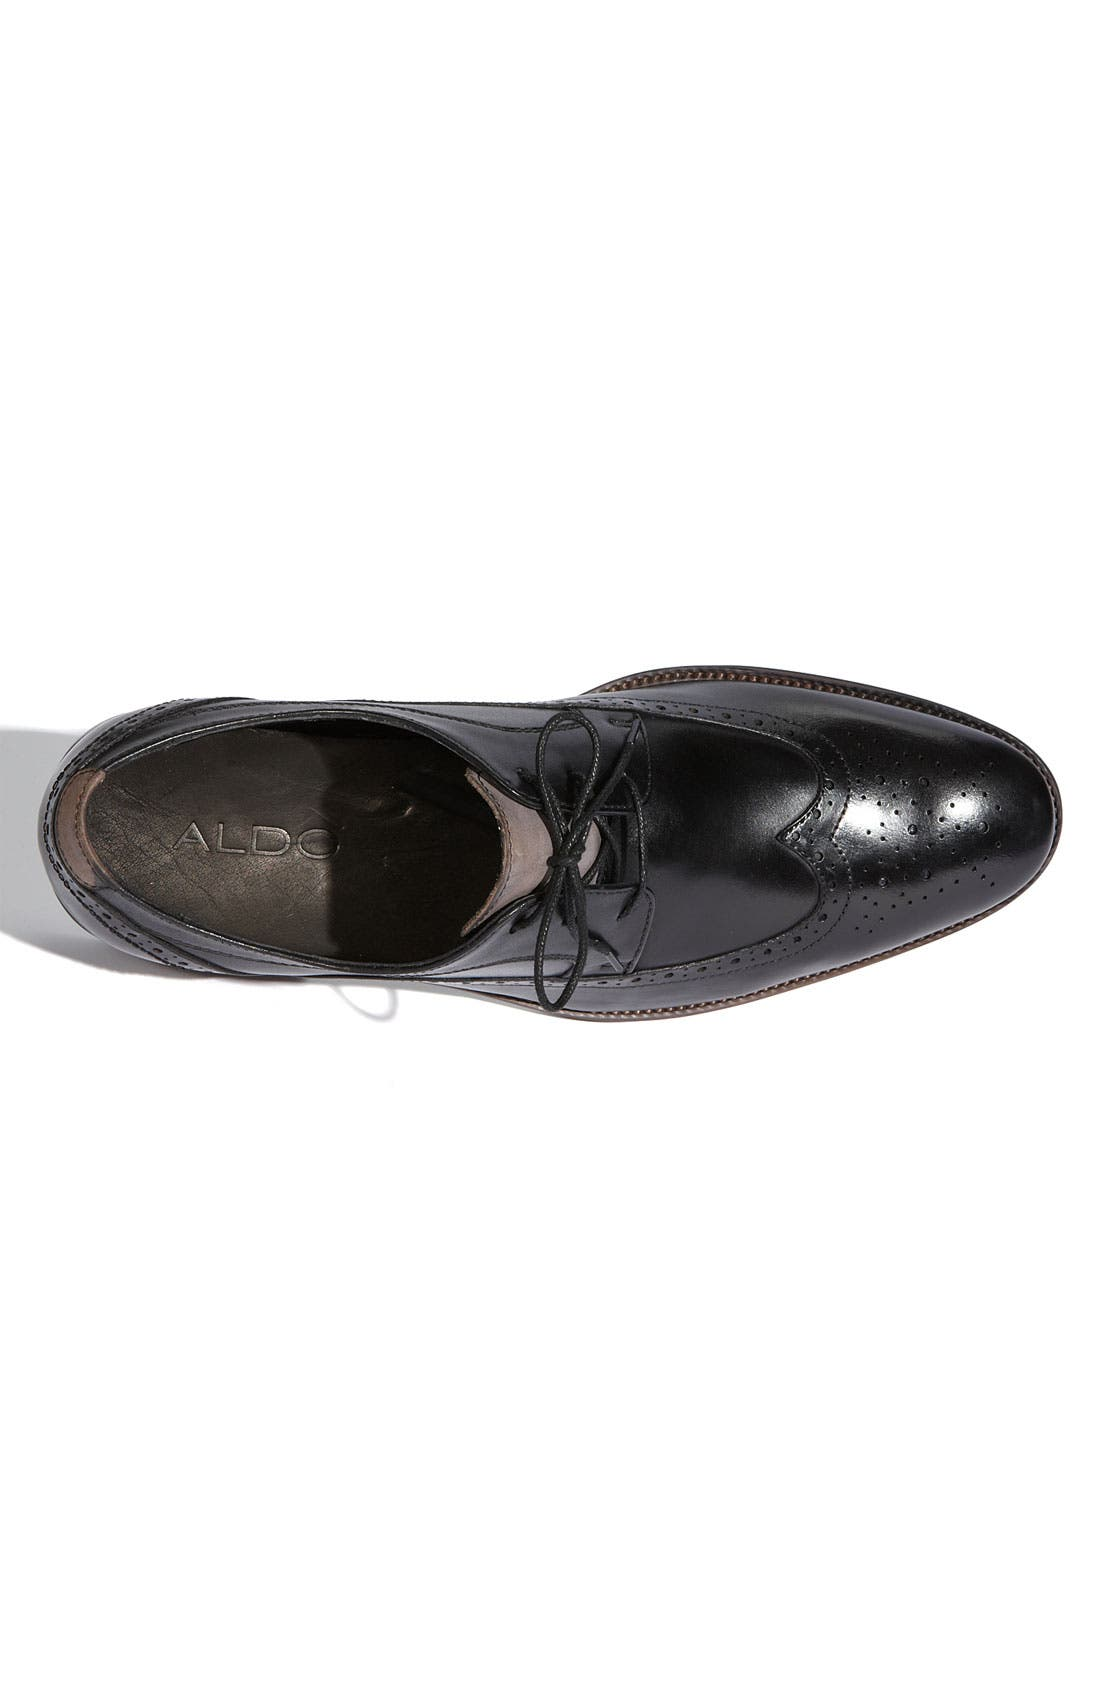 Alternate Image 3  - ALDO 'Brownlie' Wingtip Oxford